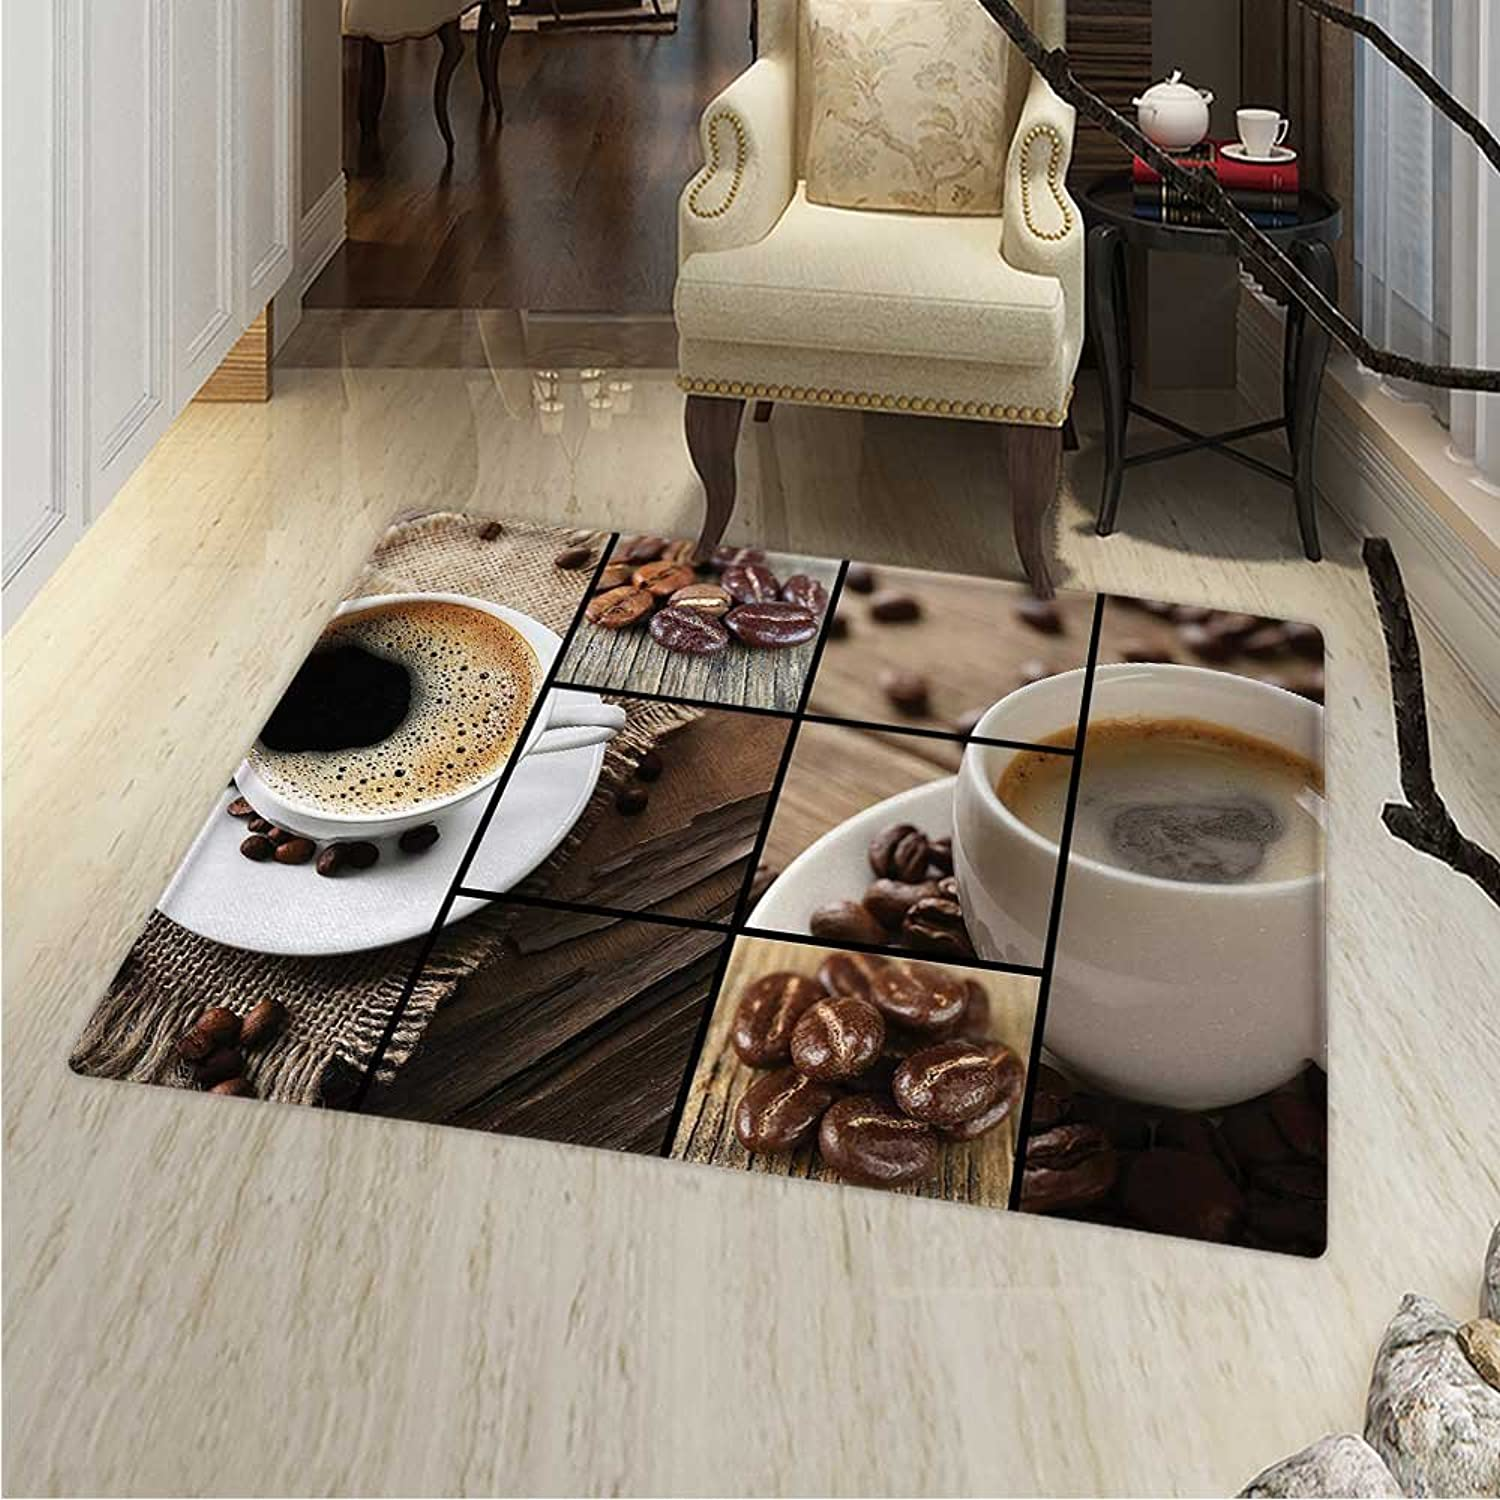 Brown Rug Kid Carpet Coffee Themed Collage Close Up Mugs Beans on Wooden Table Aromatic Roasted Espresso Drink Home Decor Foor Carpe 30 x40  Brown